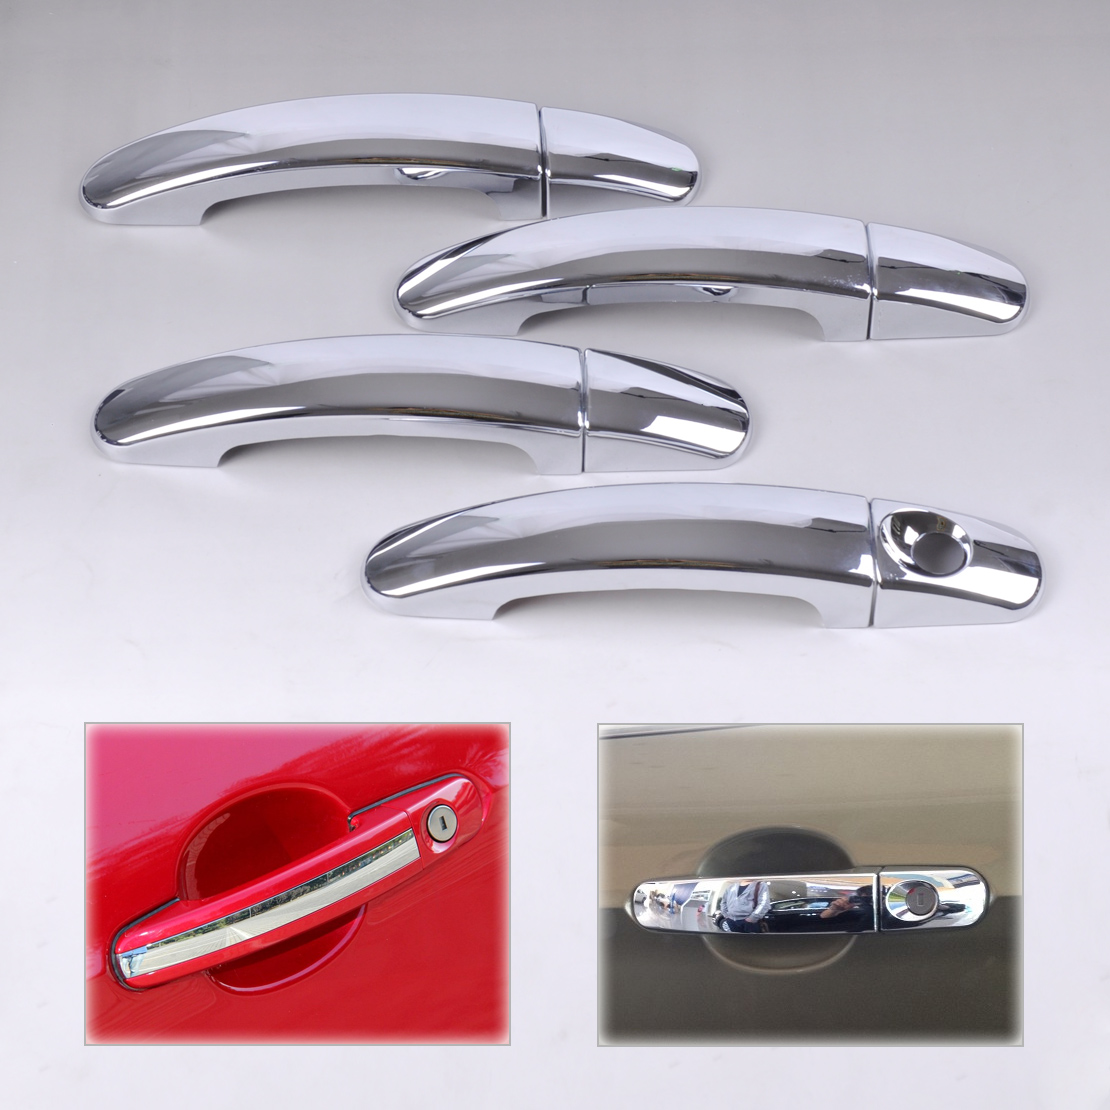 beler New Car Accessories Chrome Door Handle Cover Trim Stickers Molding Cup Frame Decoration For Ford Escape Kuga 2013 2014